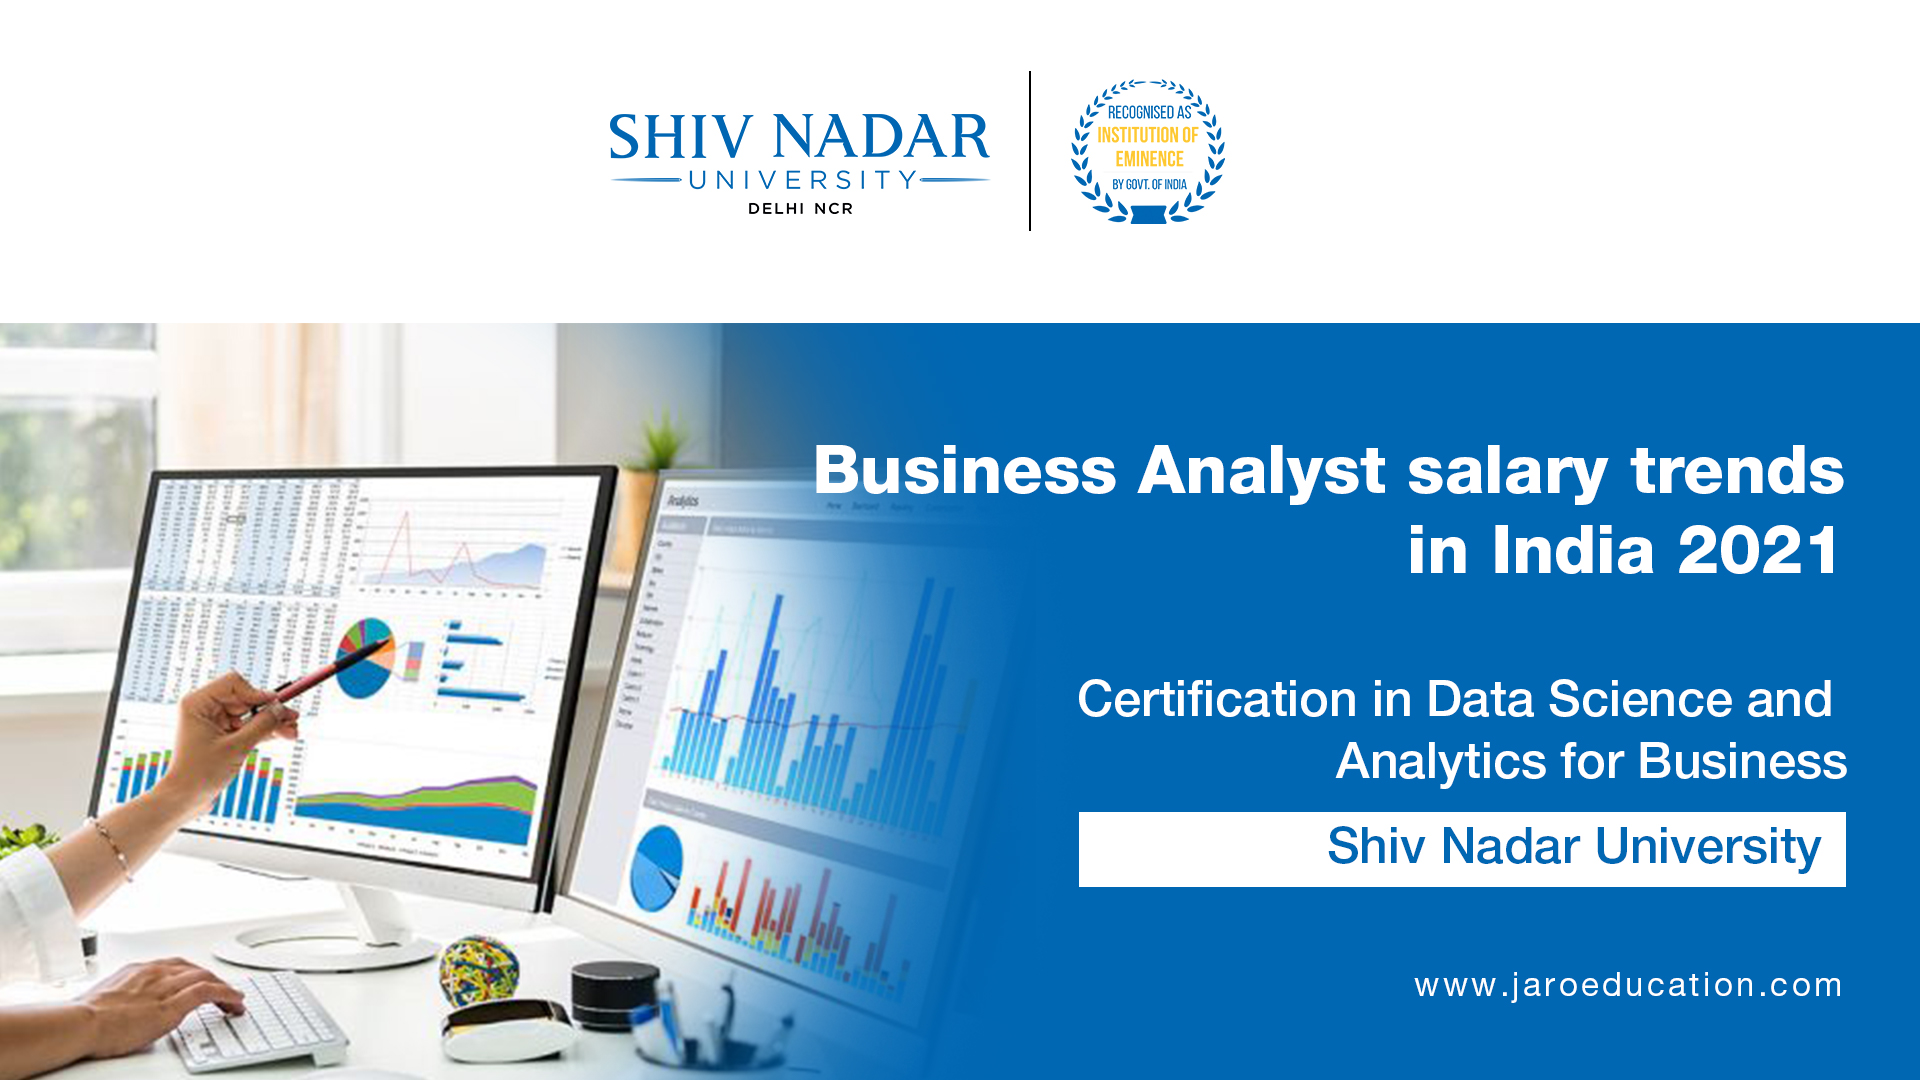 2021 Salary Trends of Business Analyst in India